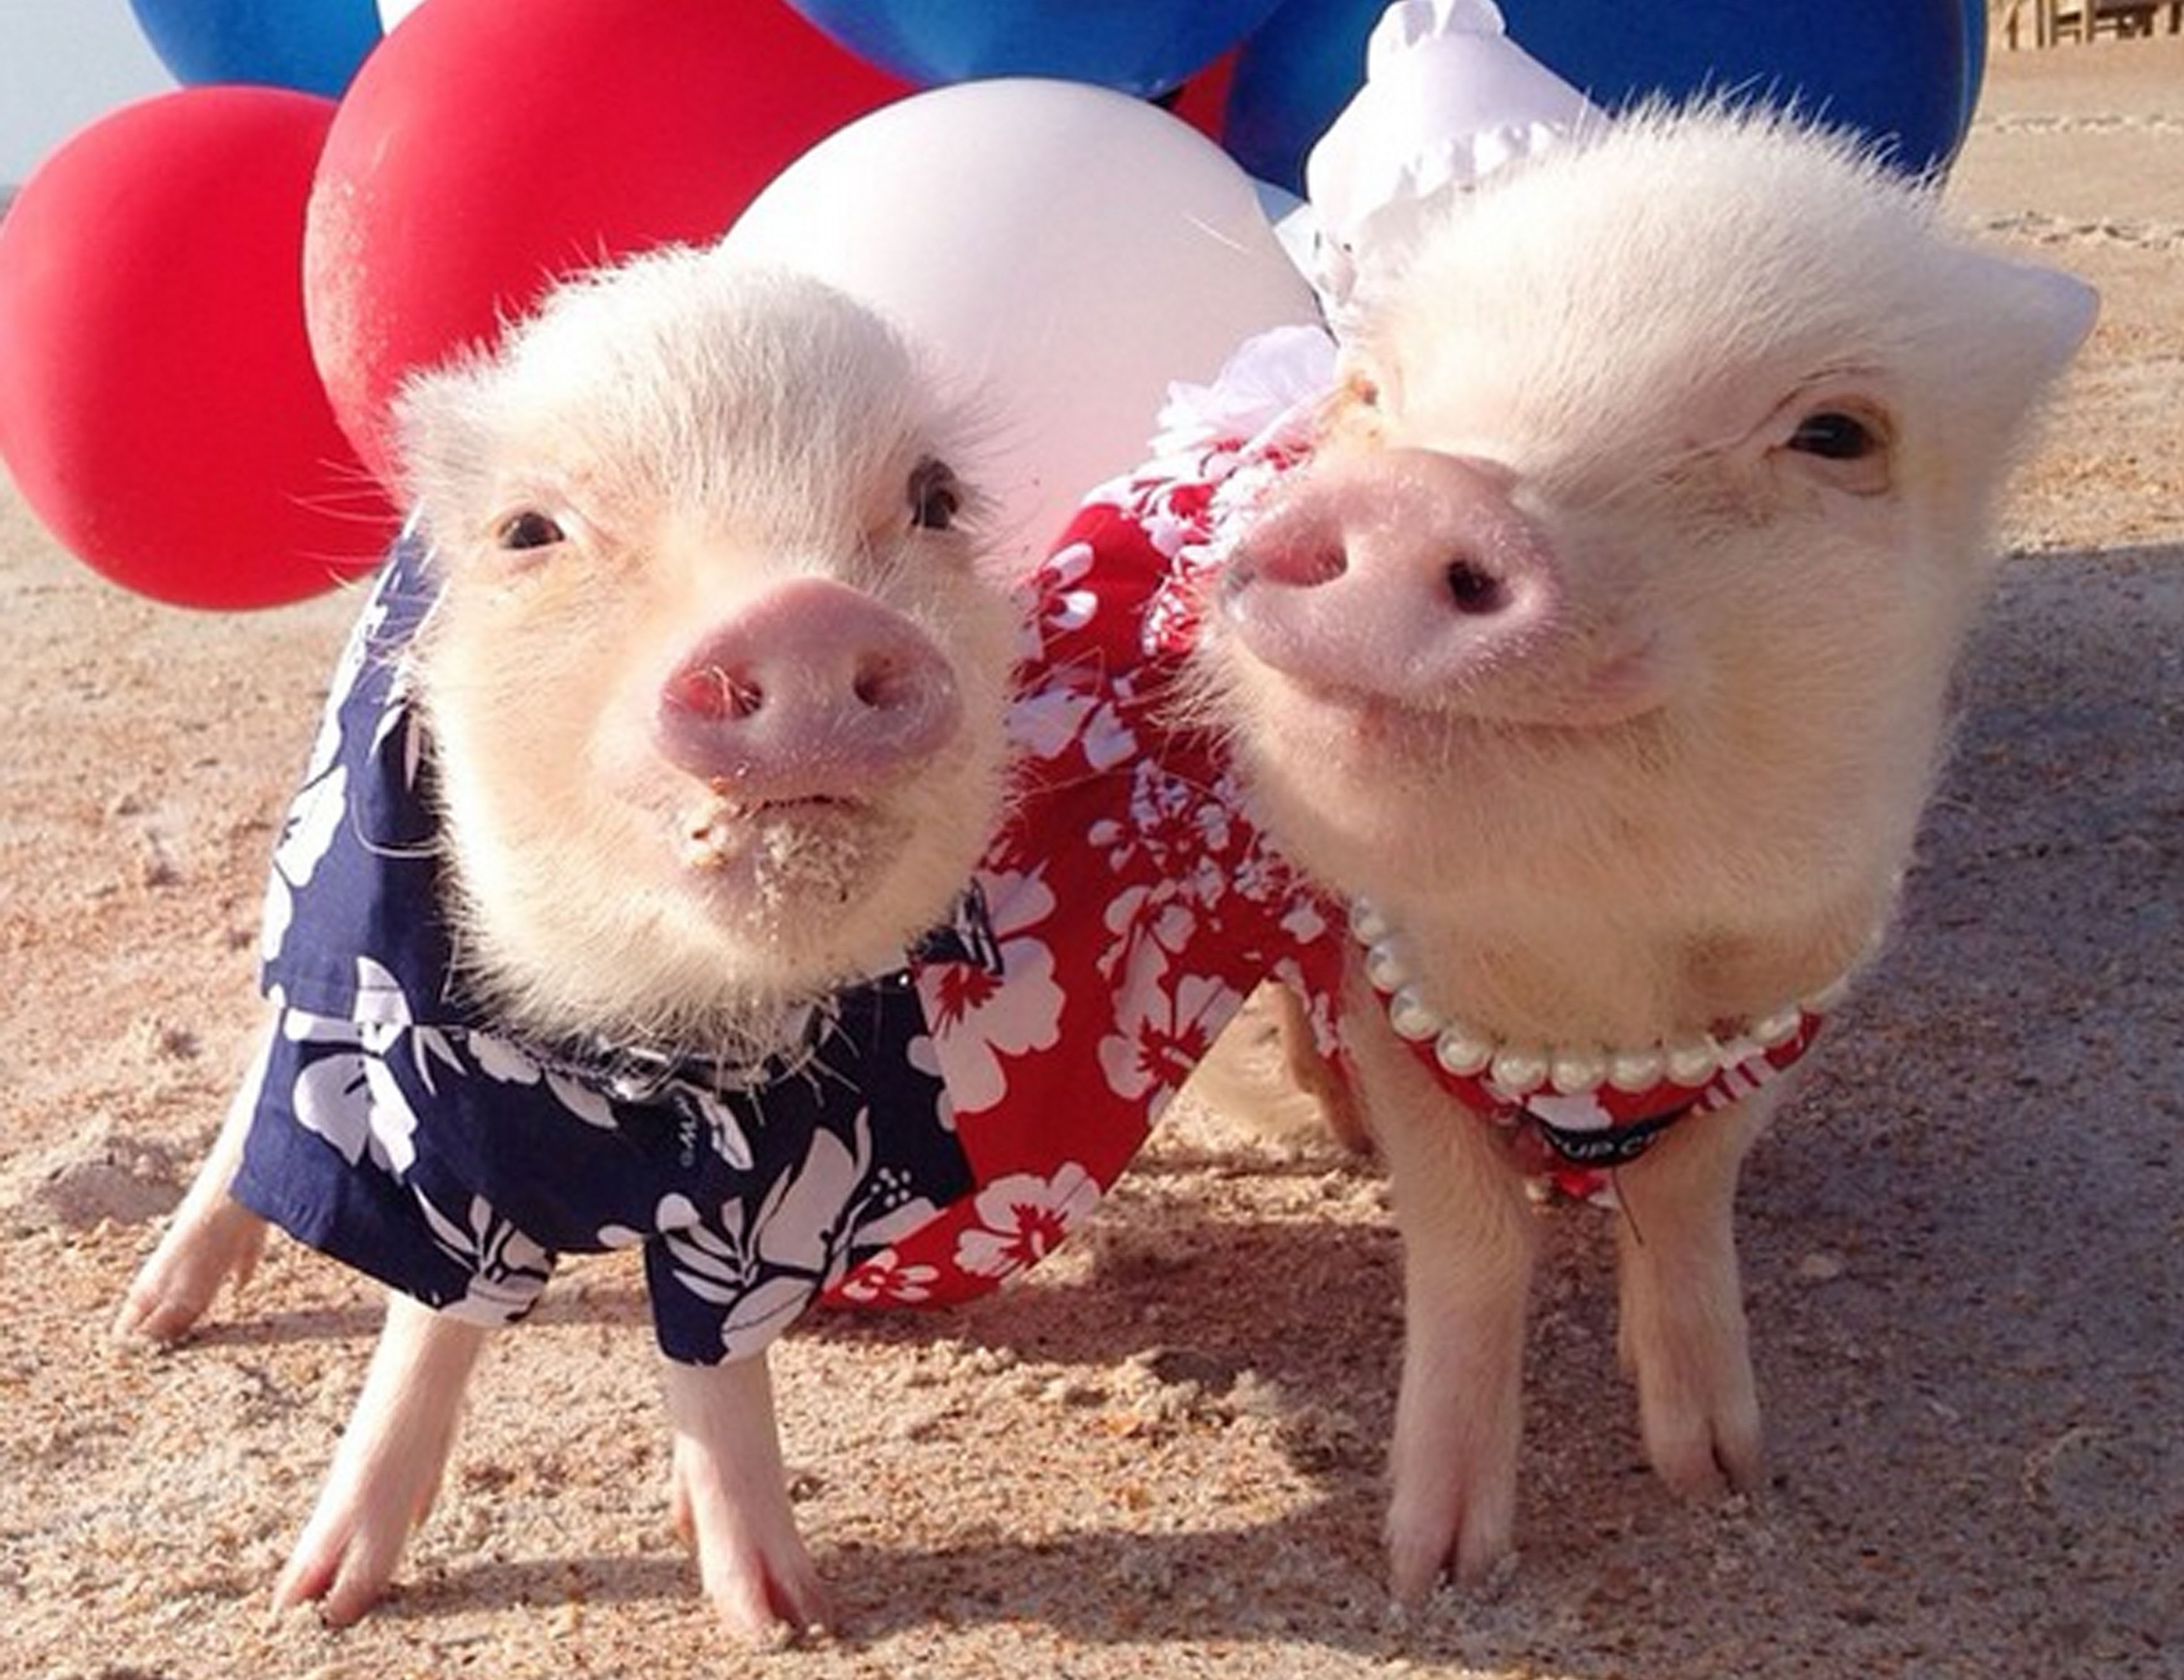 lucky swines mini pigs become social media sensations